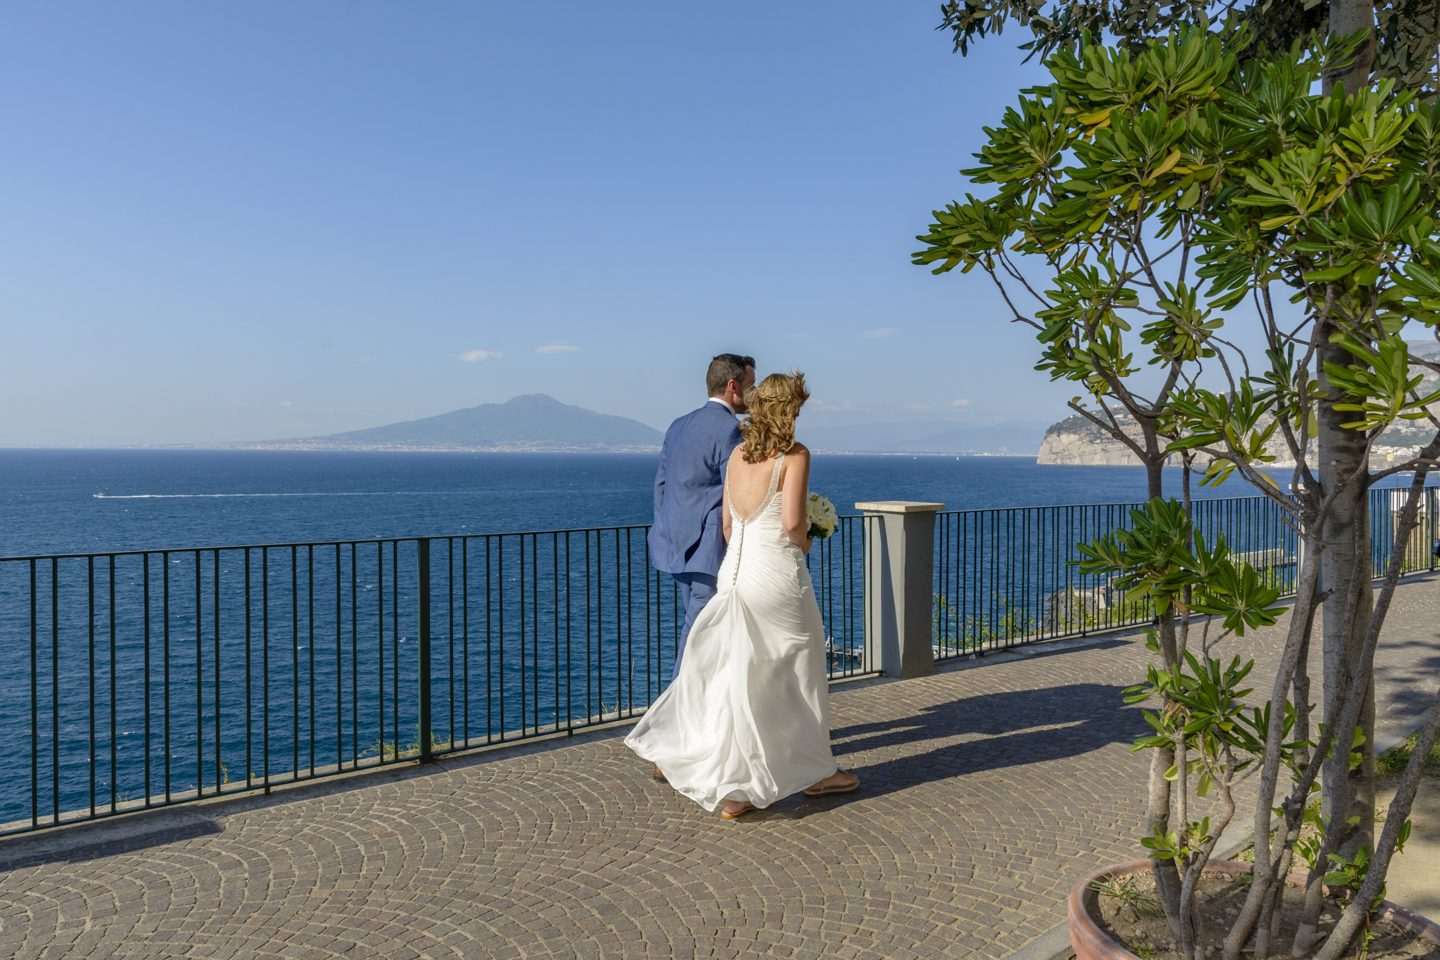 WeddingPhoto_FineArtStudio_Sorrento_Villa_Comunale_Blue_View